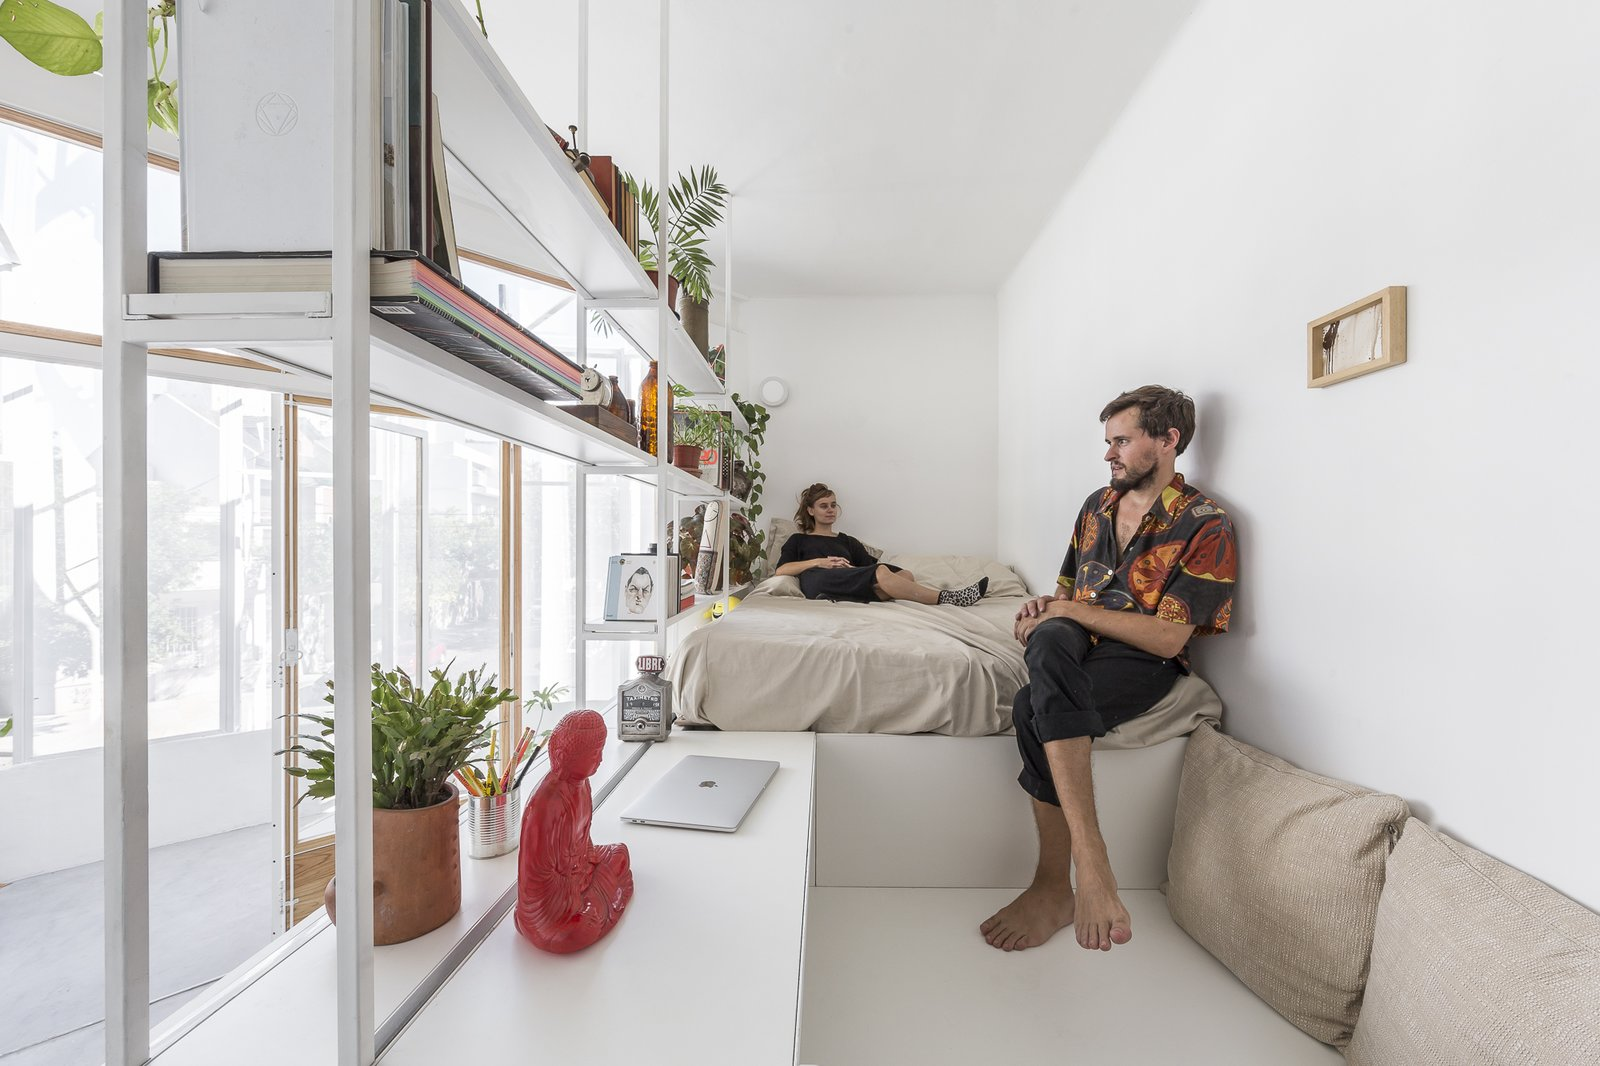 Bedroom, Bookcase, Storage, Shelves, Bed, Concrete Floor, and Wall Lighting The sleeping and study nook sit on a raised platform, and are surrounded by open shelving filled with books and plants.     Best Photos from A Perforated Balcony Brings Ample Light Into a Tiny Abode